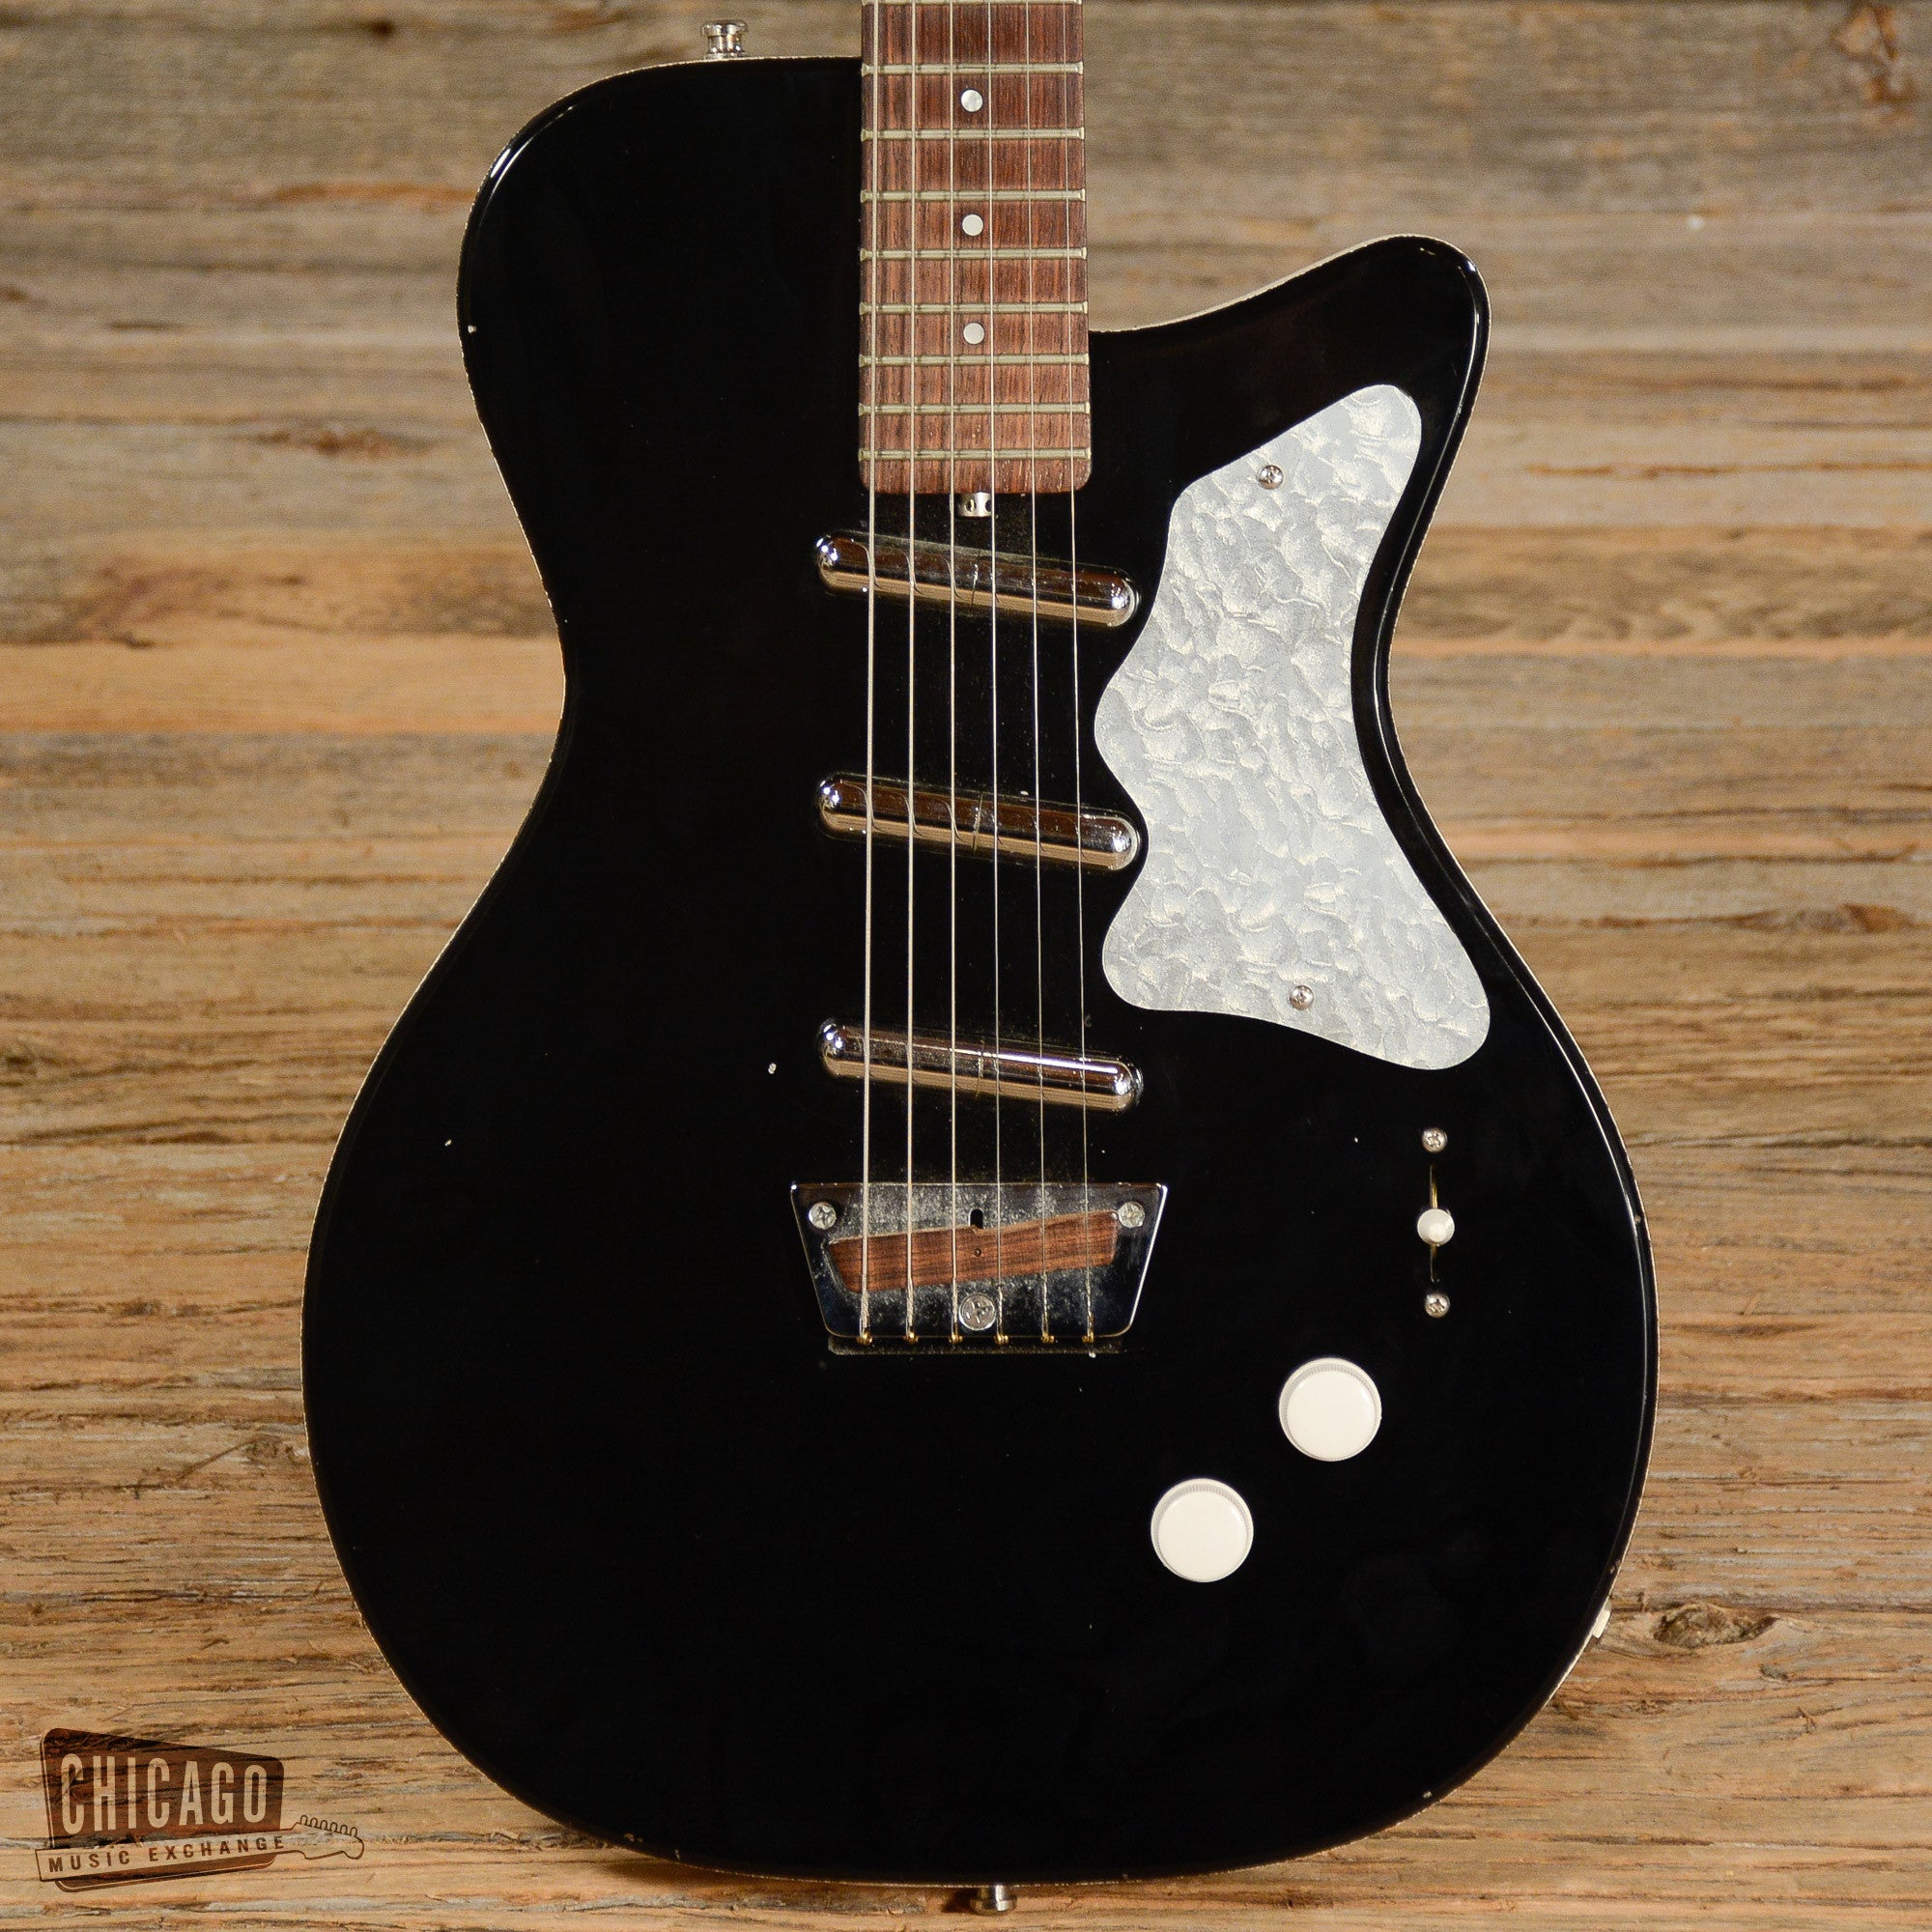 Cute Dimarzio Wiring Tiny Telecaster 5 Way Switch Wiring Diagram Regular Viper Remote Start Wiring Two Humbuckers 5 Way Switch Old Bulldog Car Wiring Diagrams OrangeFree Tsb Great Ibanez Sr300 Bass Guitar Wiring Diagram Contemporary ..